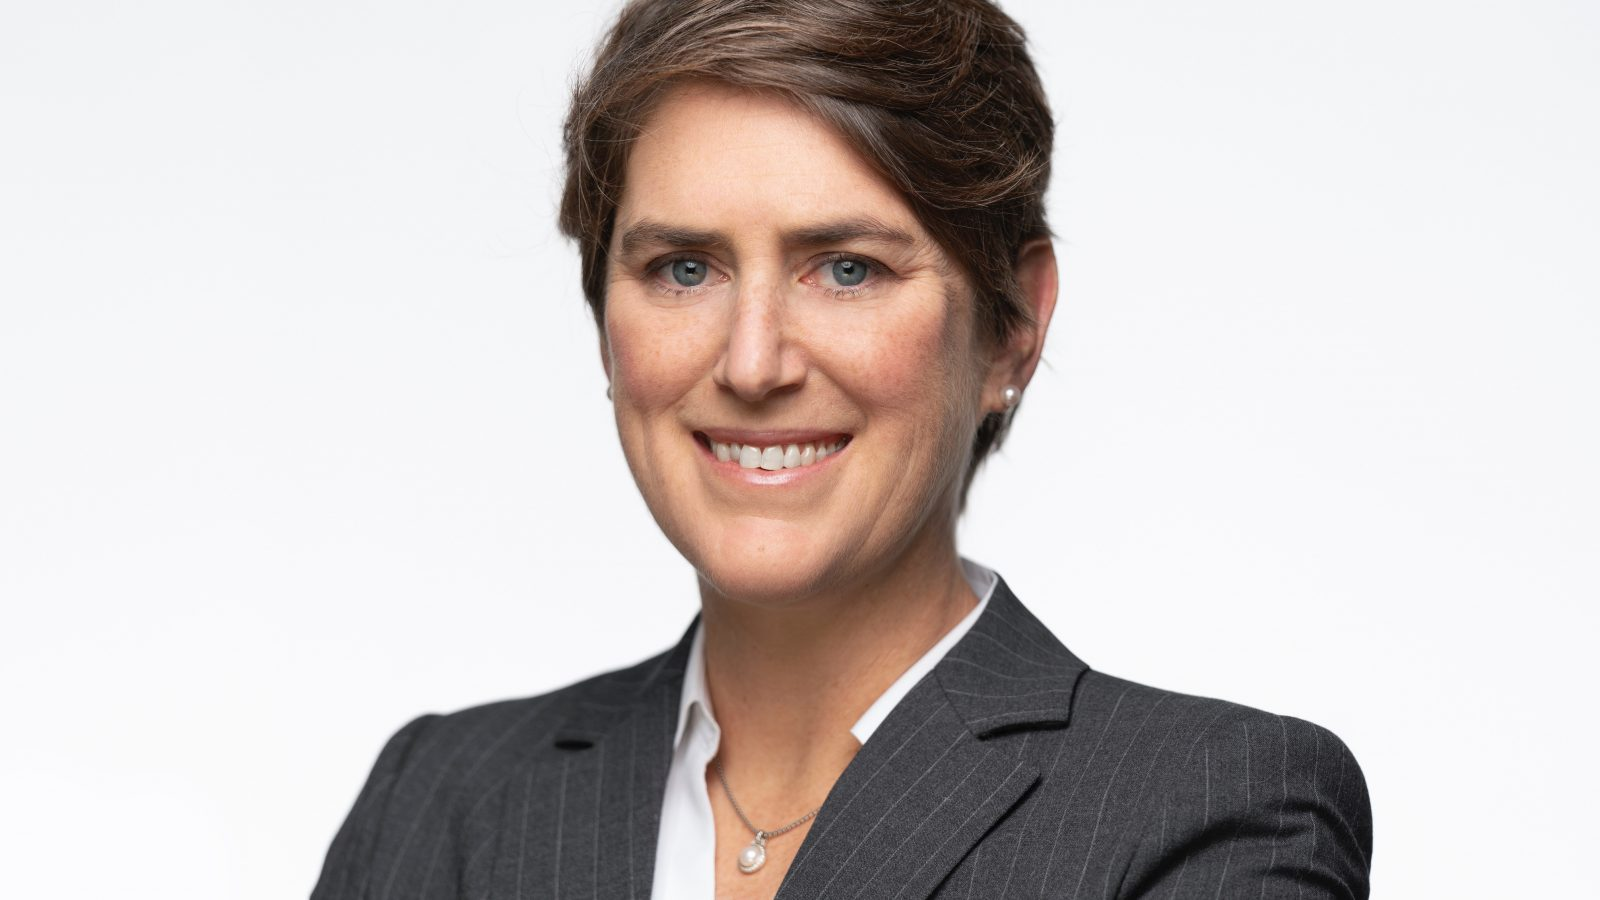 A headshot of Professor Kyleanne Hunter against a white background